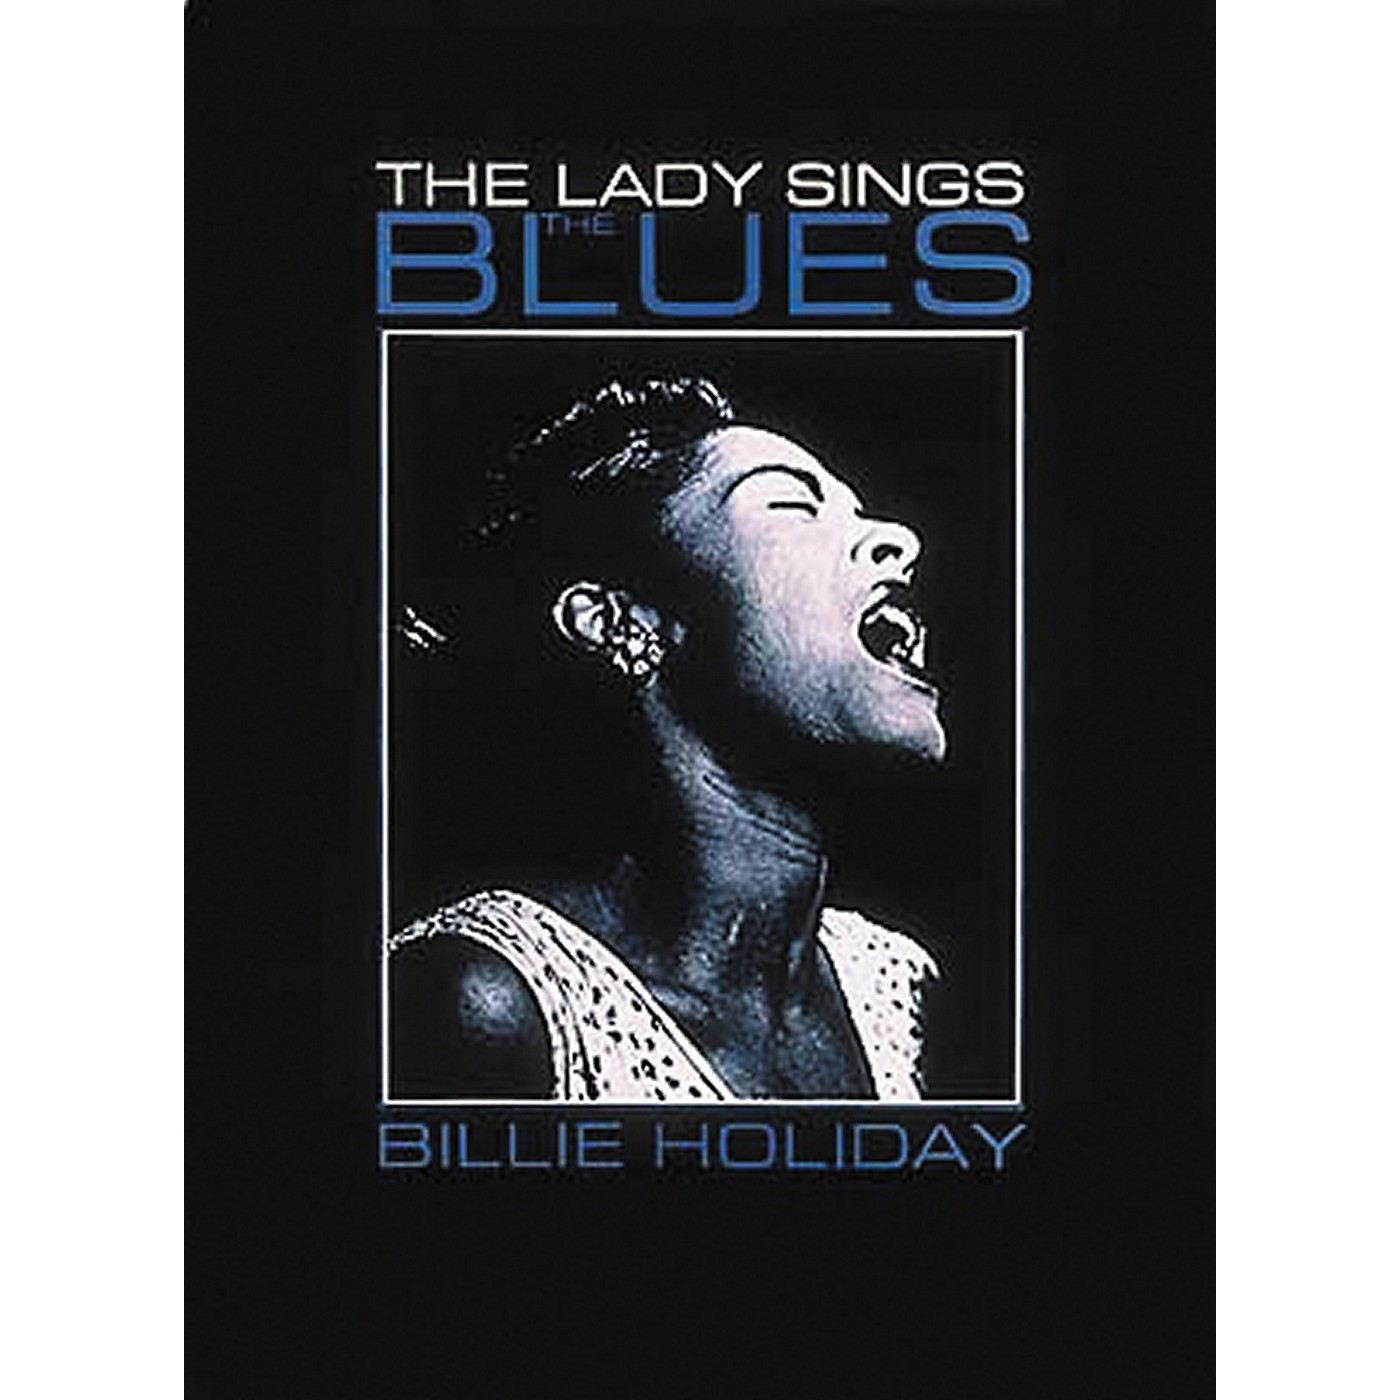 Hal Leonard Billie Holiday - Lady Sings The Blues Piano, Vocal, Guitar Songbook thumbnail